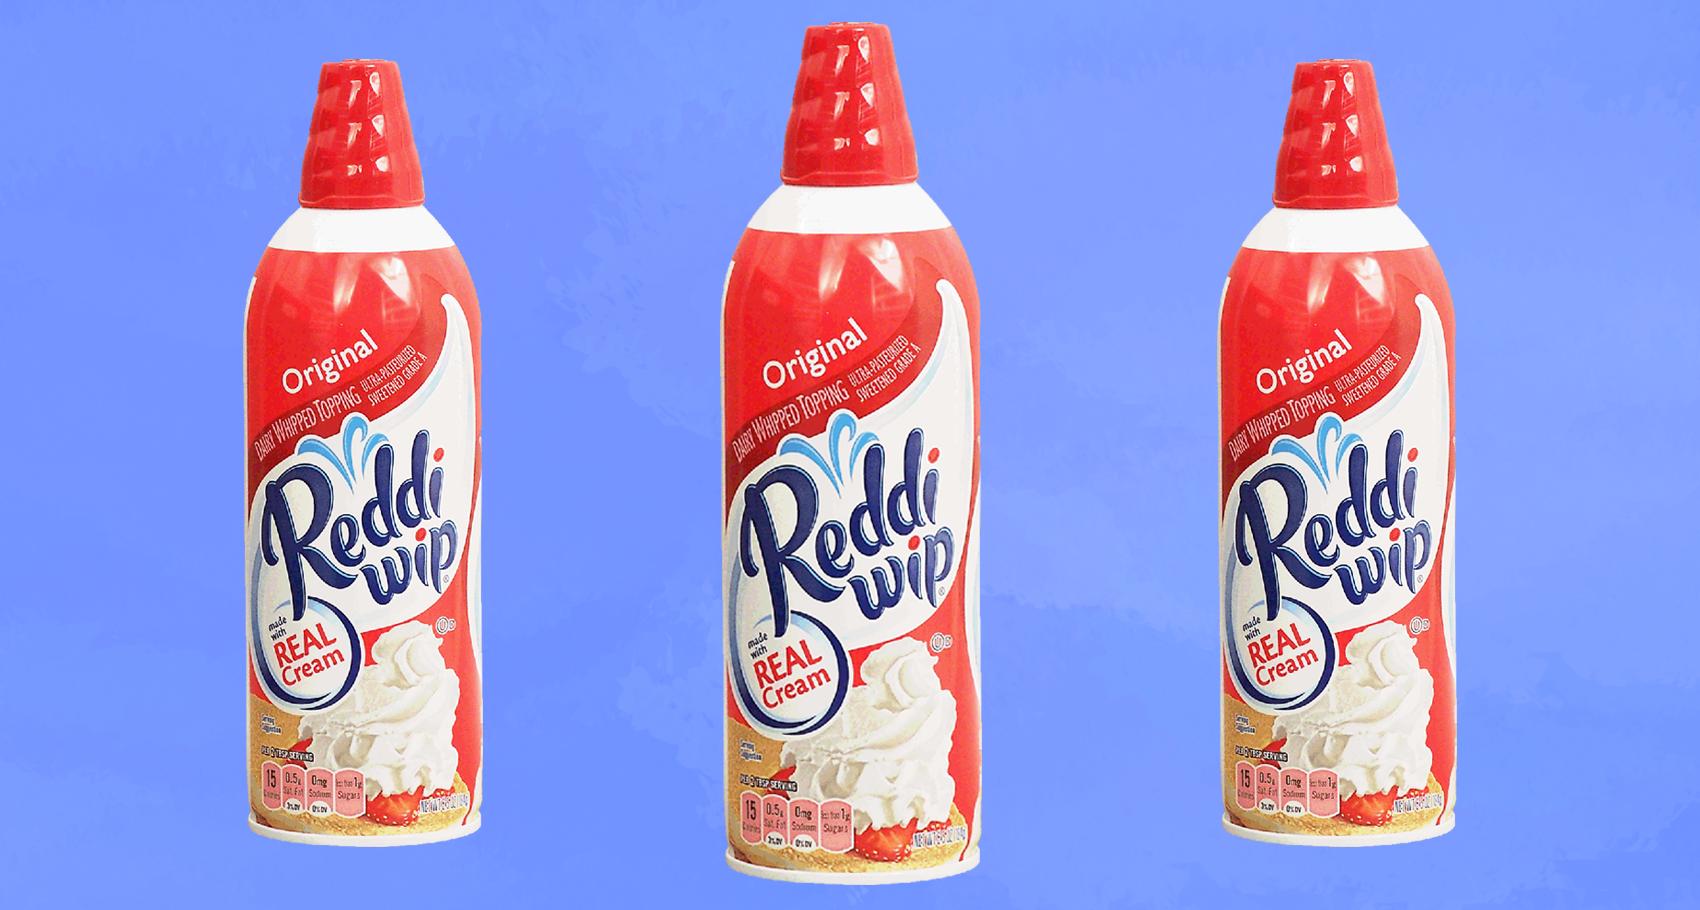 Reddi-Wip Will Launch a Nondairy Whipped Topping to 'Cater to Consumers', Company Says